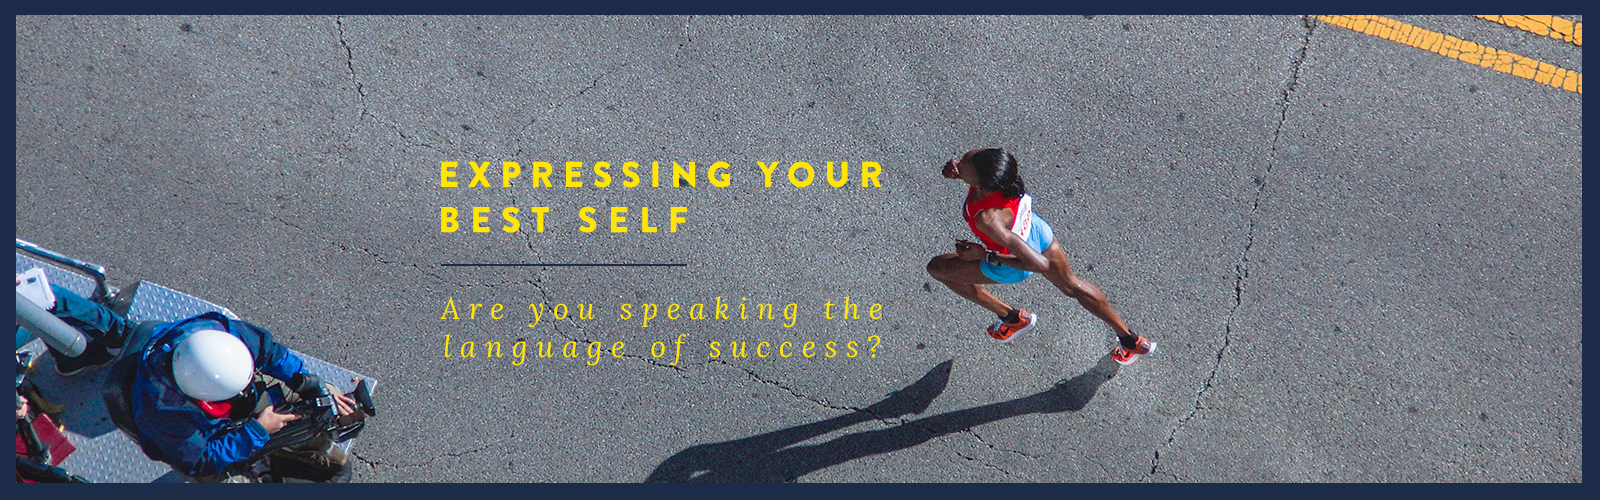 Expressing Your Best Self: Are you speaking the language of success?